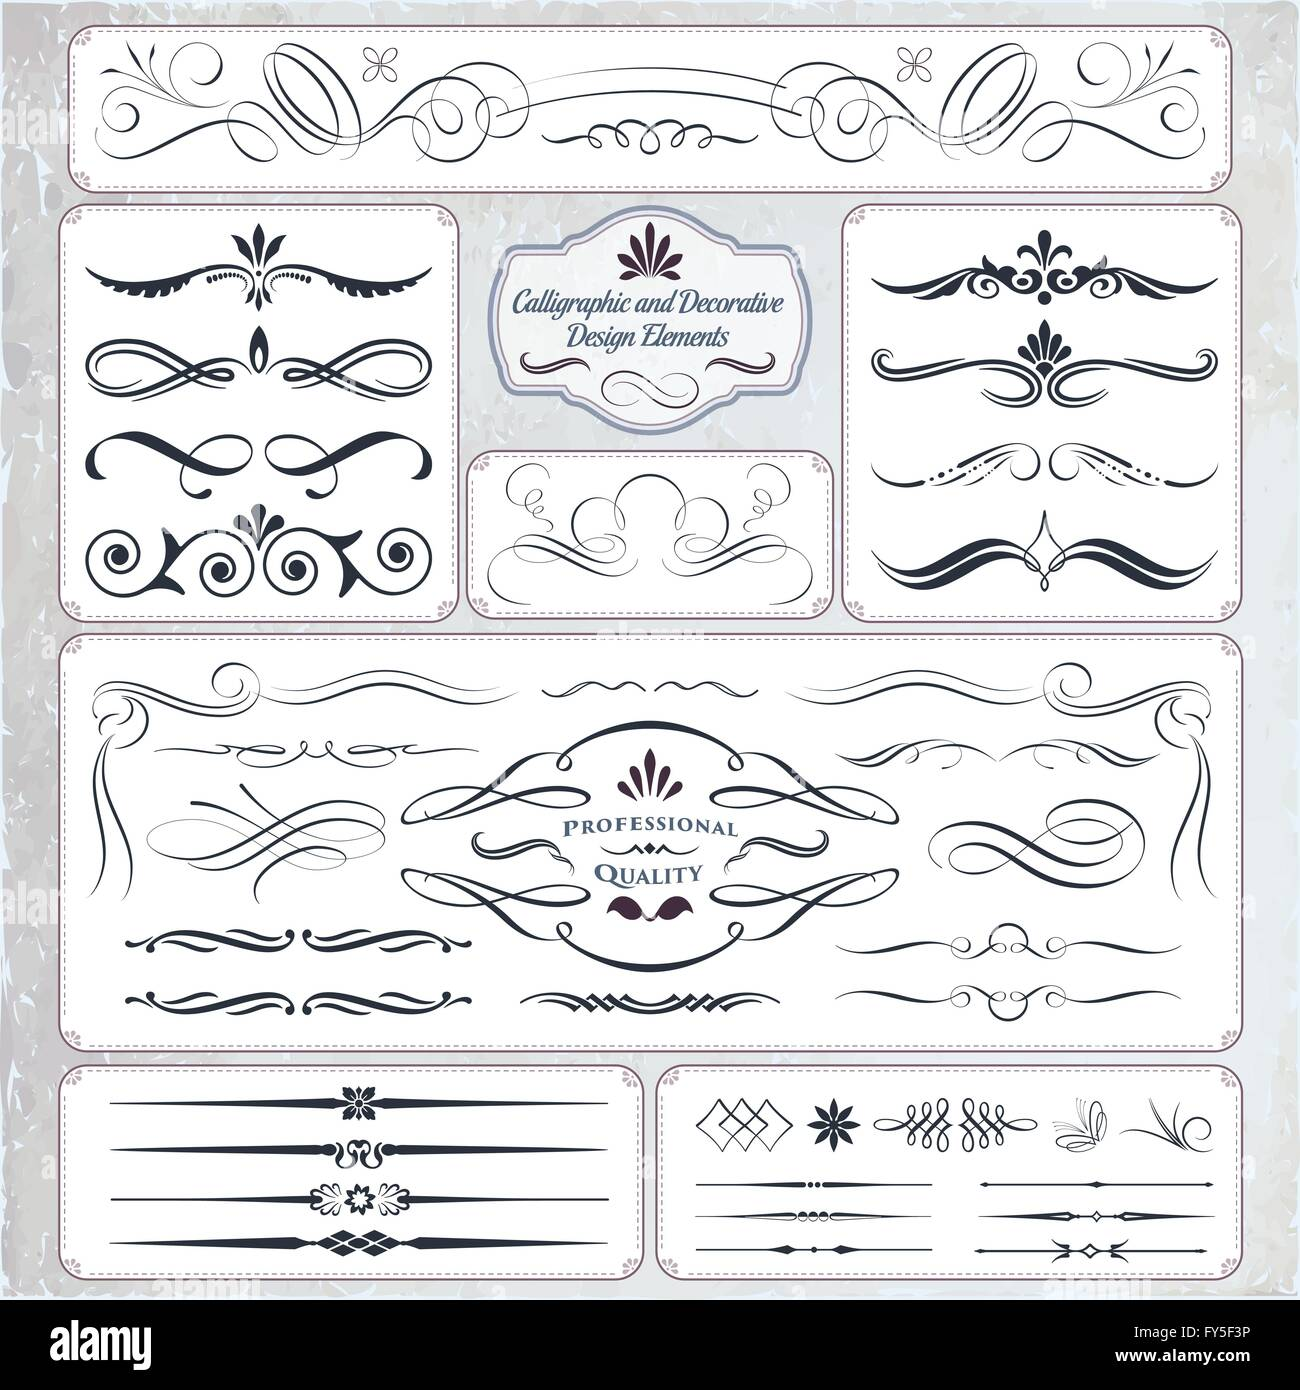 Collection of Calligraphic Decorative Design Elements - Stock Image